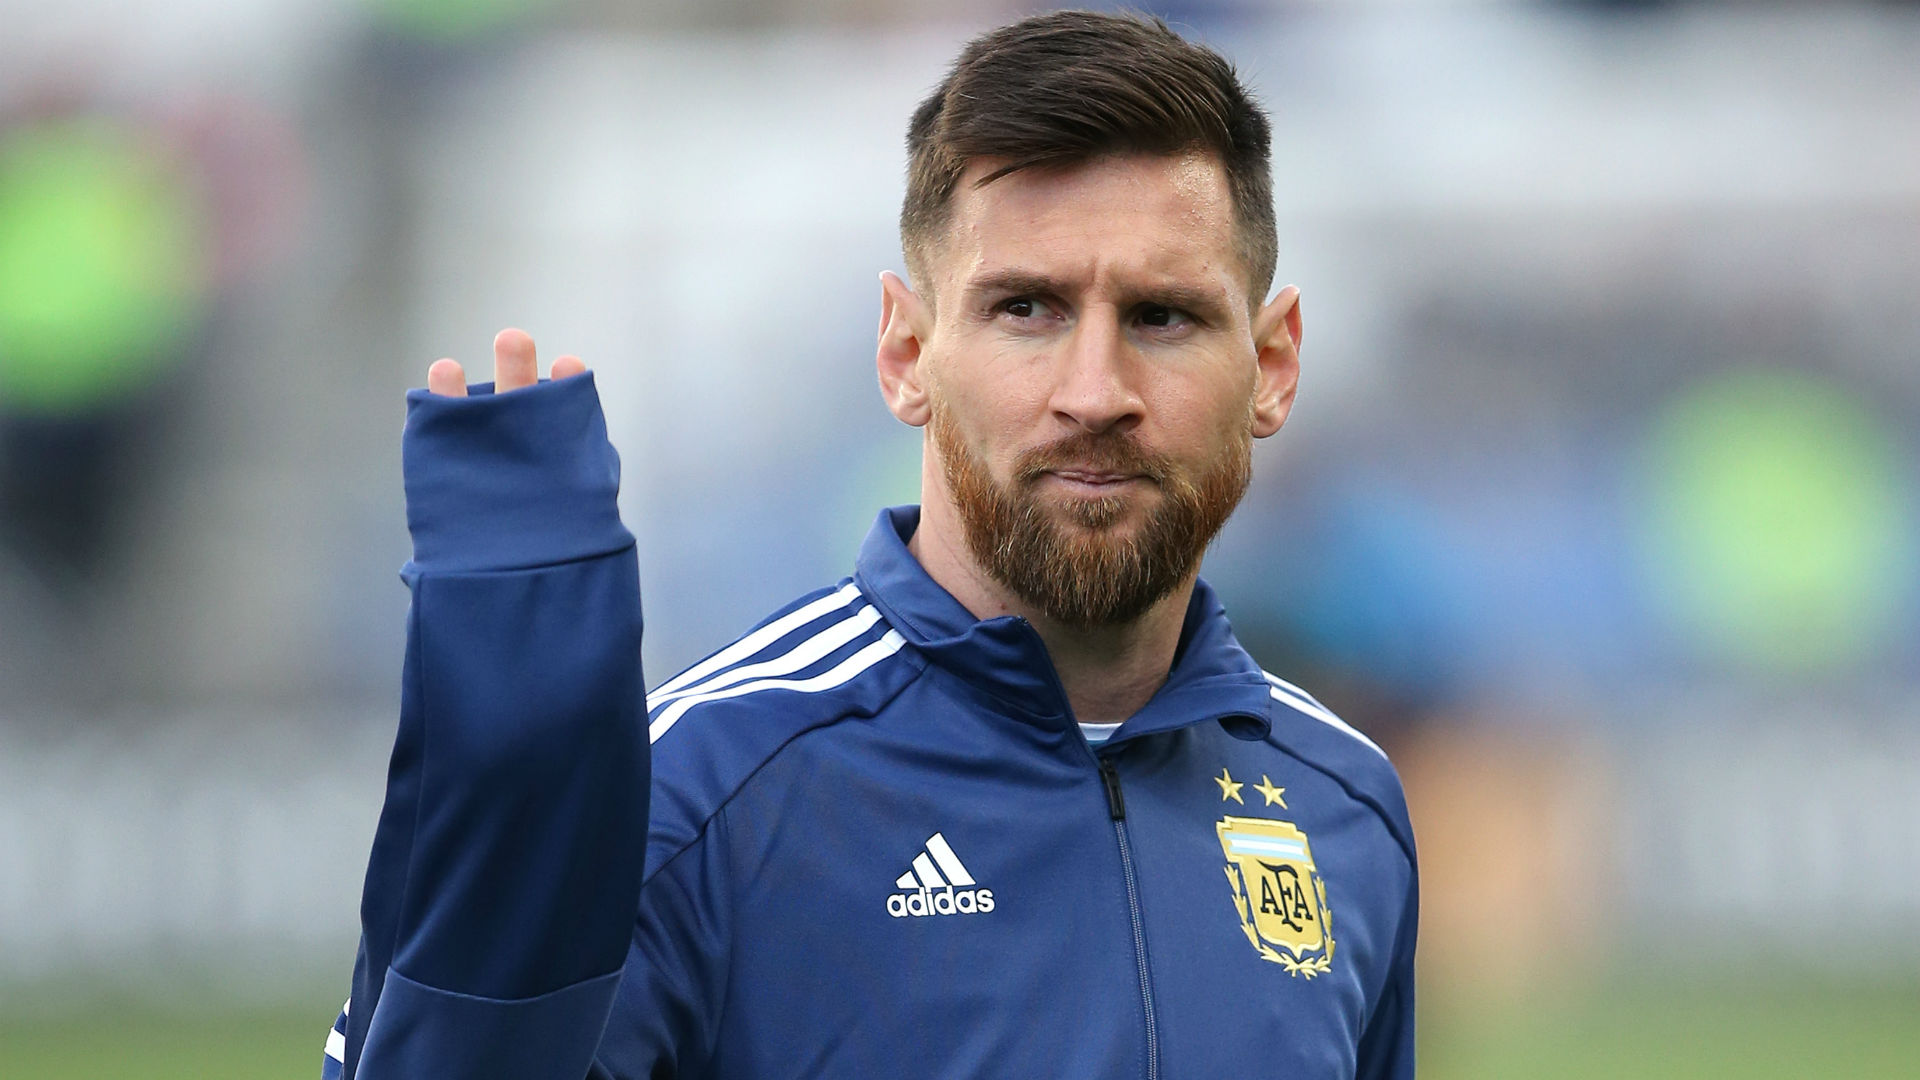 Brazil 0-1 Argentina: Returning Messi extends Selecao's winless run